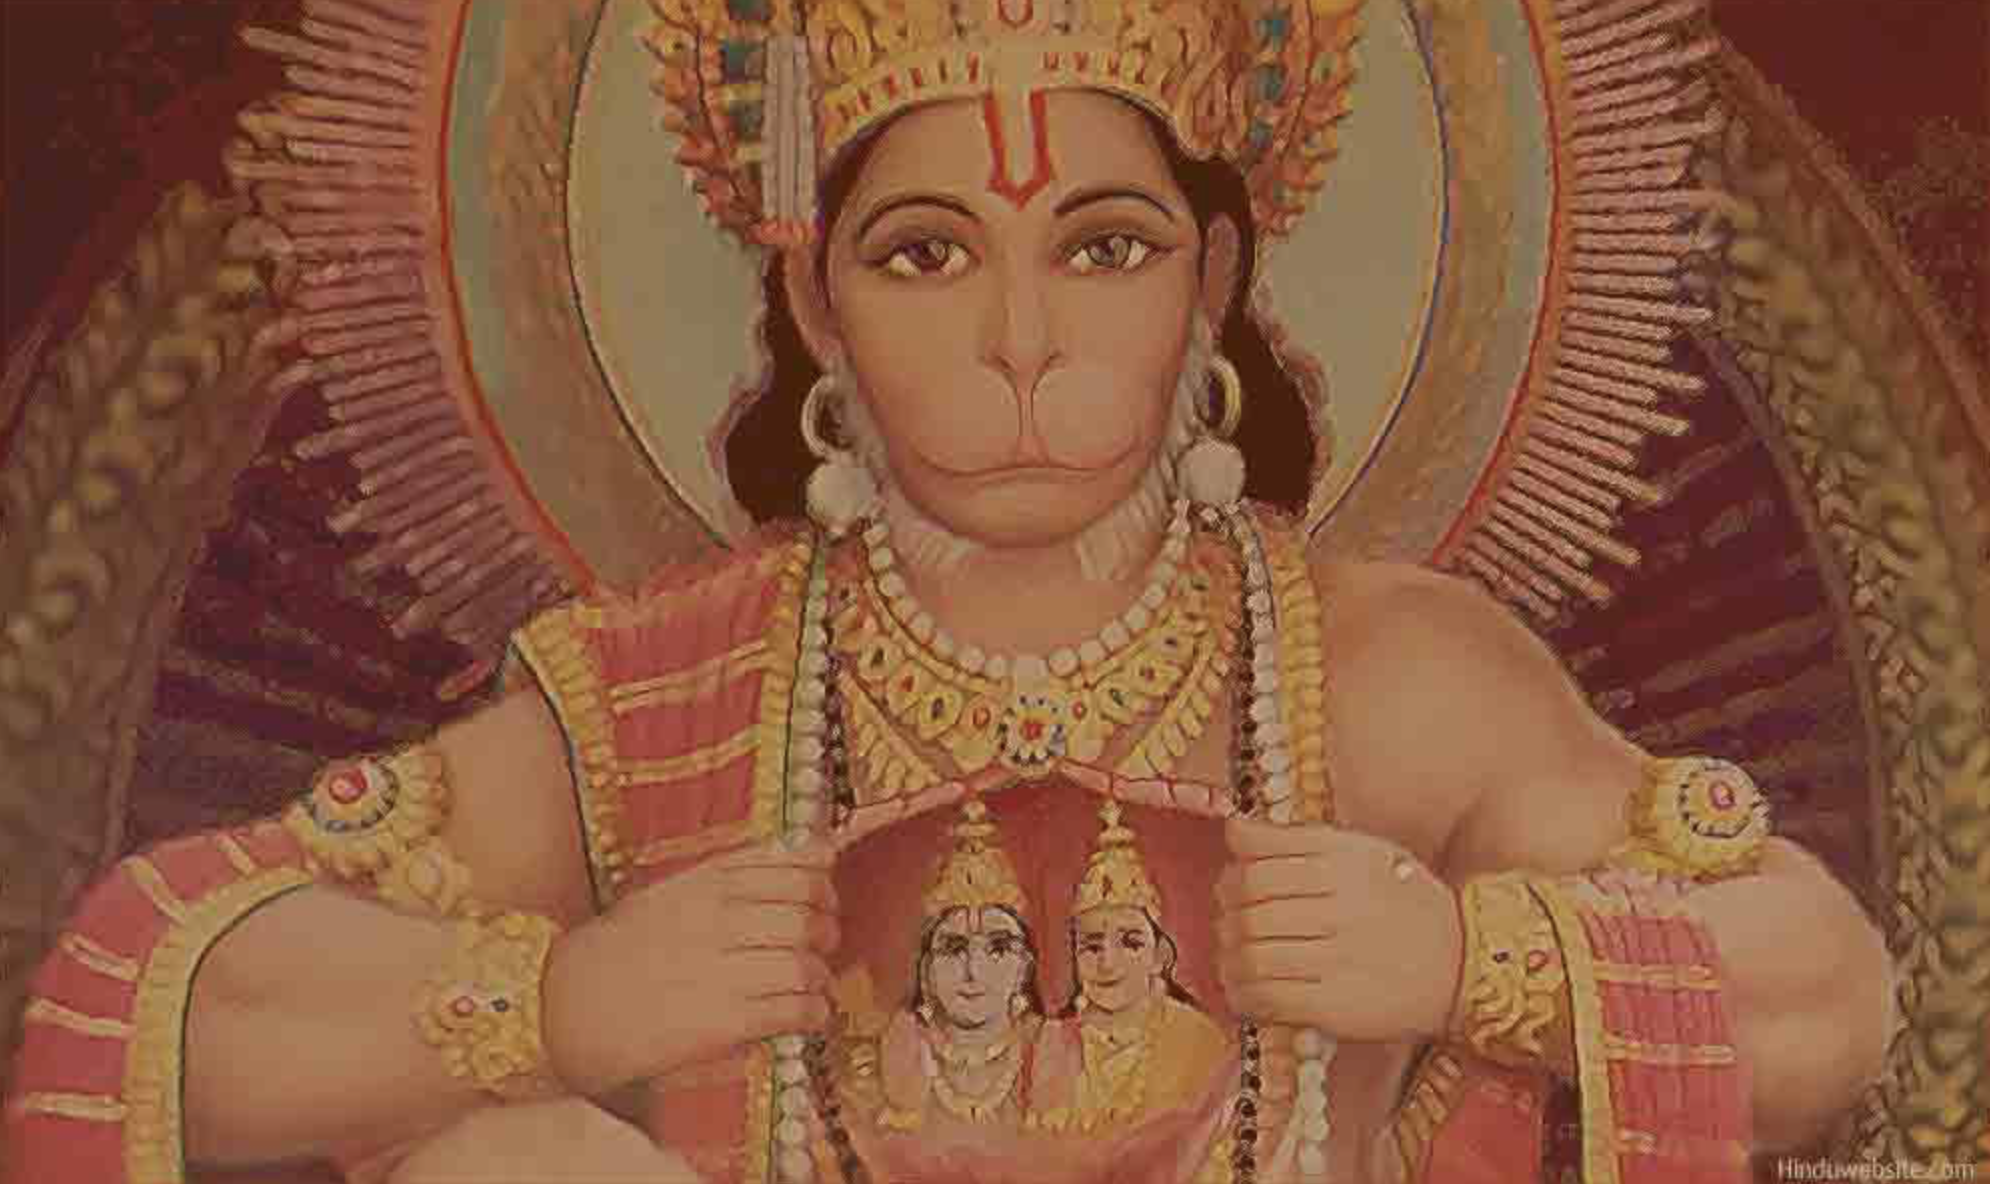 An image of Lord Hanuman, the Monkey God, on  Hinduwebsite.com . This image is a reminder to each of us to open up our own hearts to see what's in it that we most revere, and figure out how we can be of service to it by using the talents we've been gifted with.